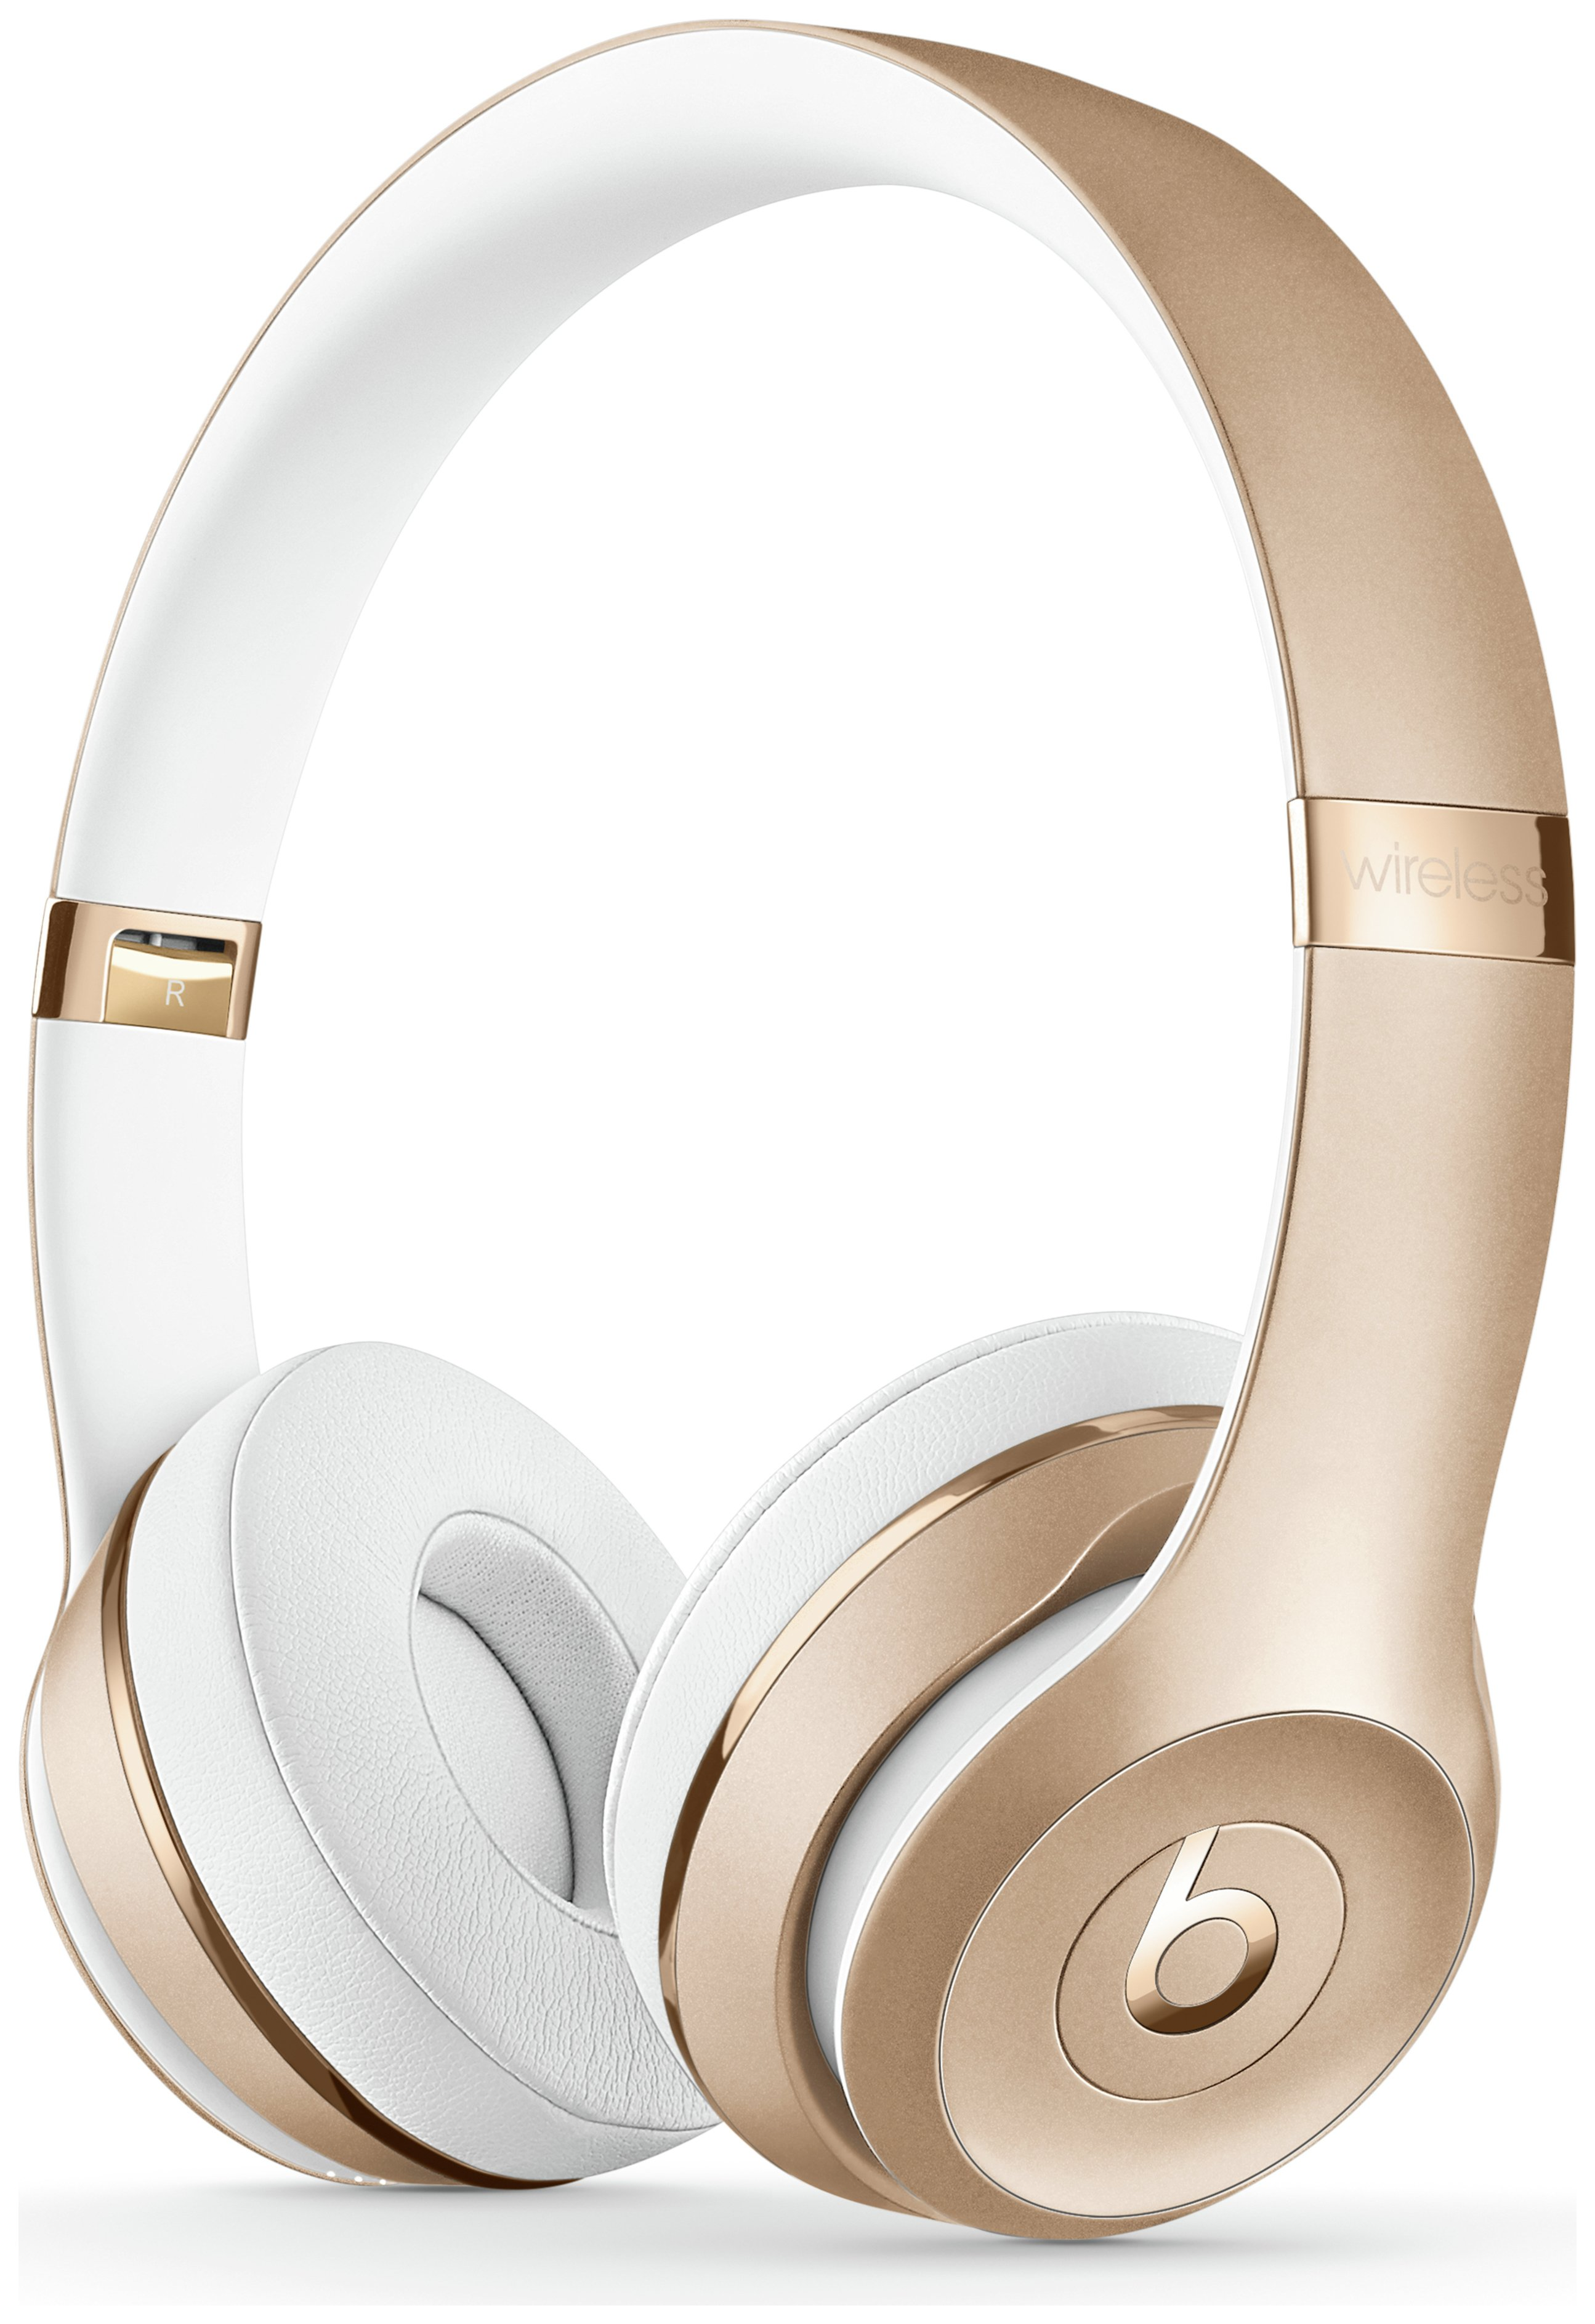 Image of Beats by Dre Solo3 On-Ear Wireless Headphones - White & Gold